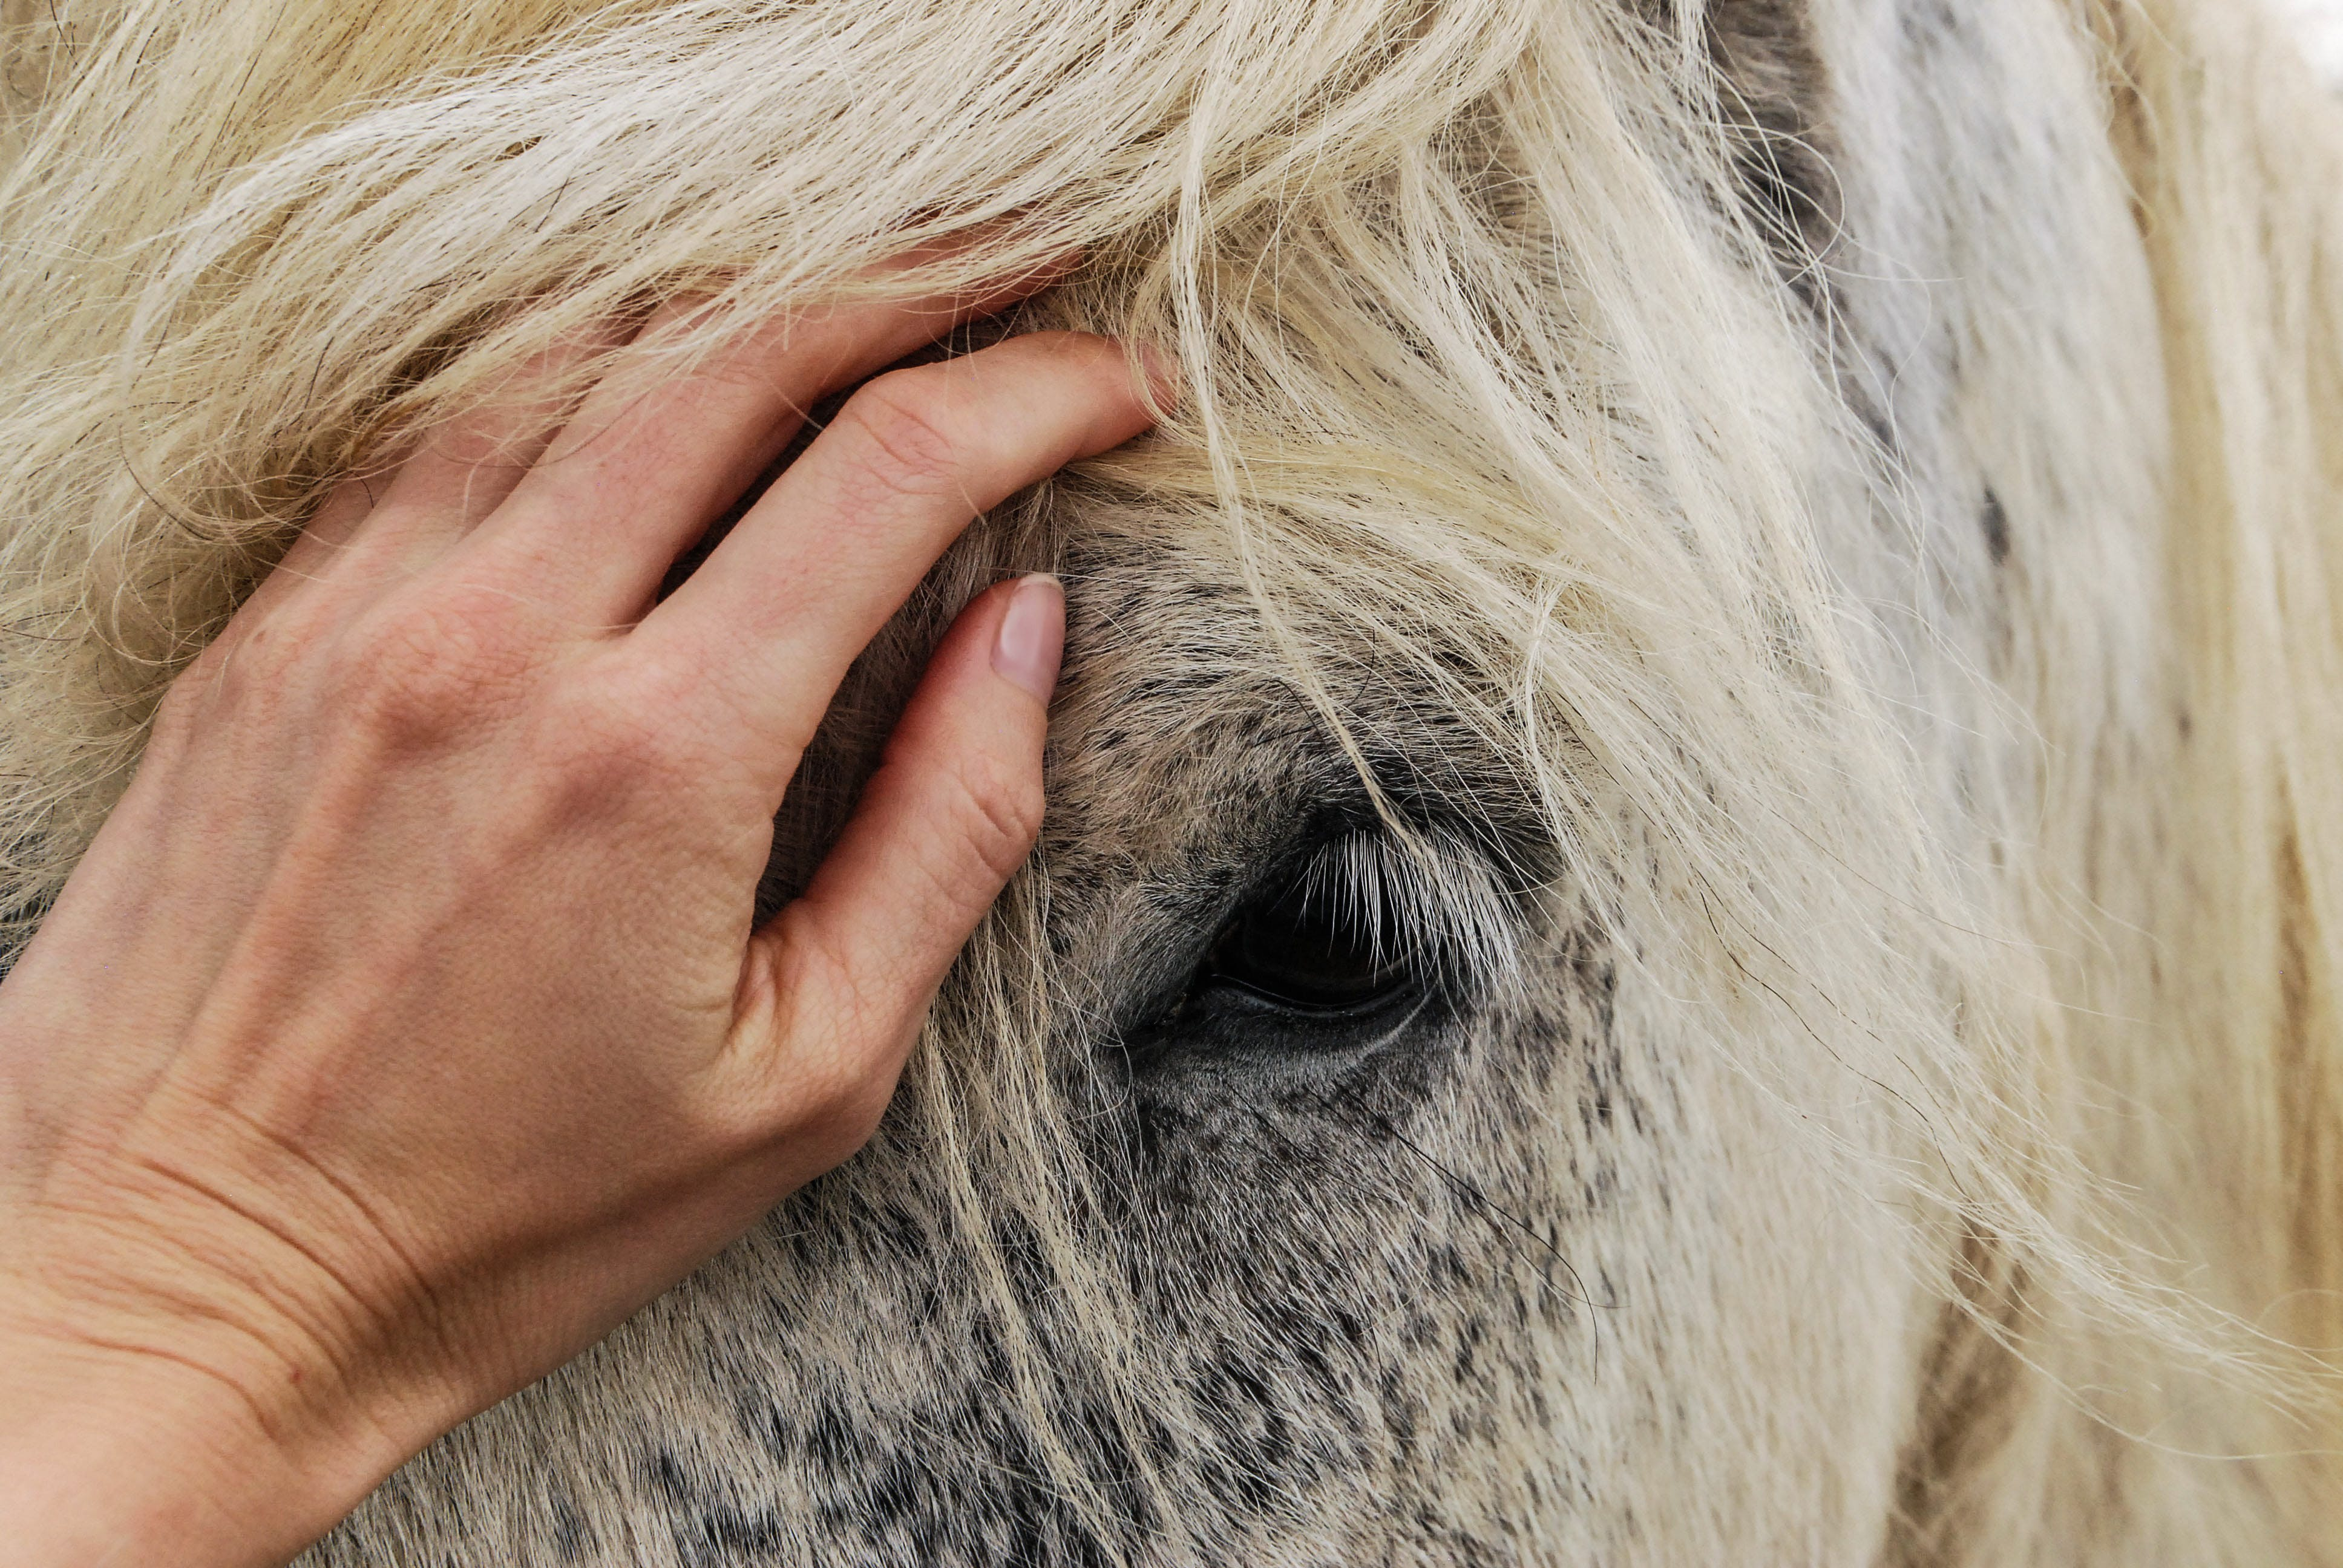 Person's Hand on White Horse's Face